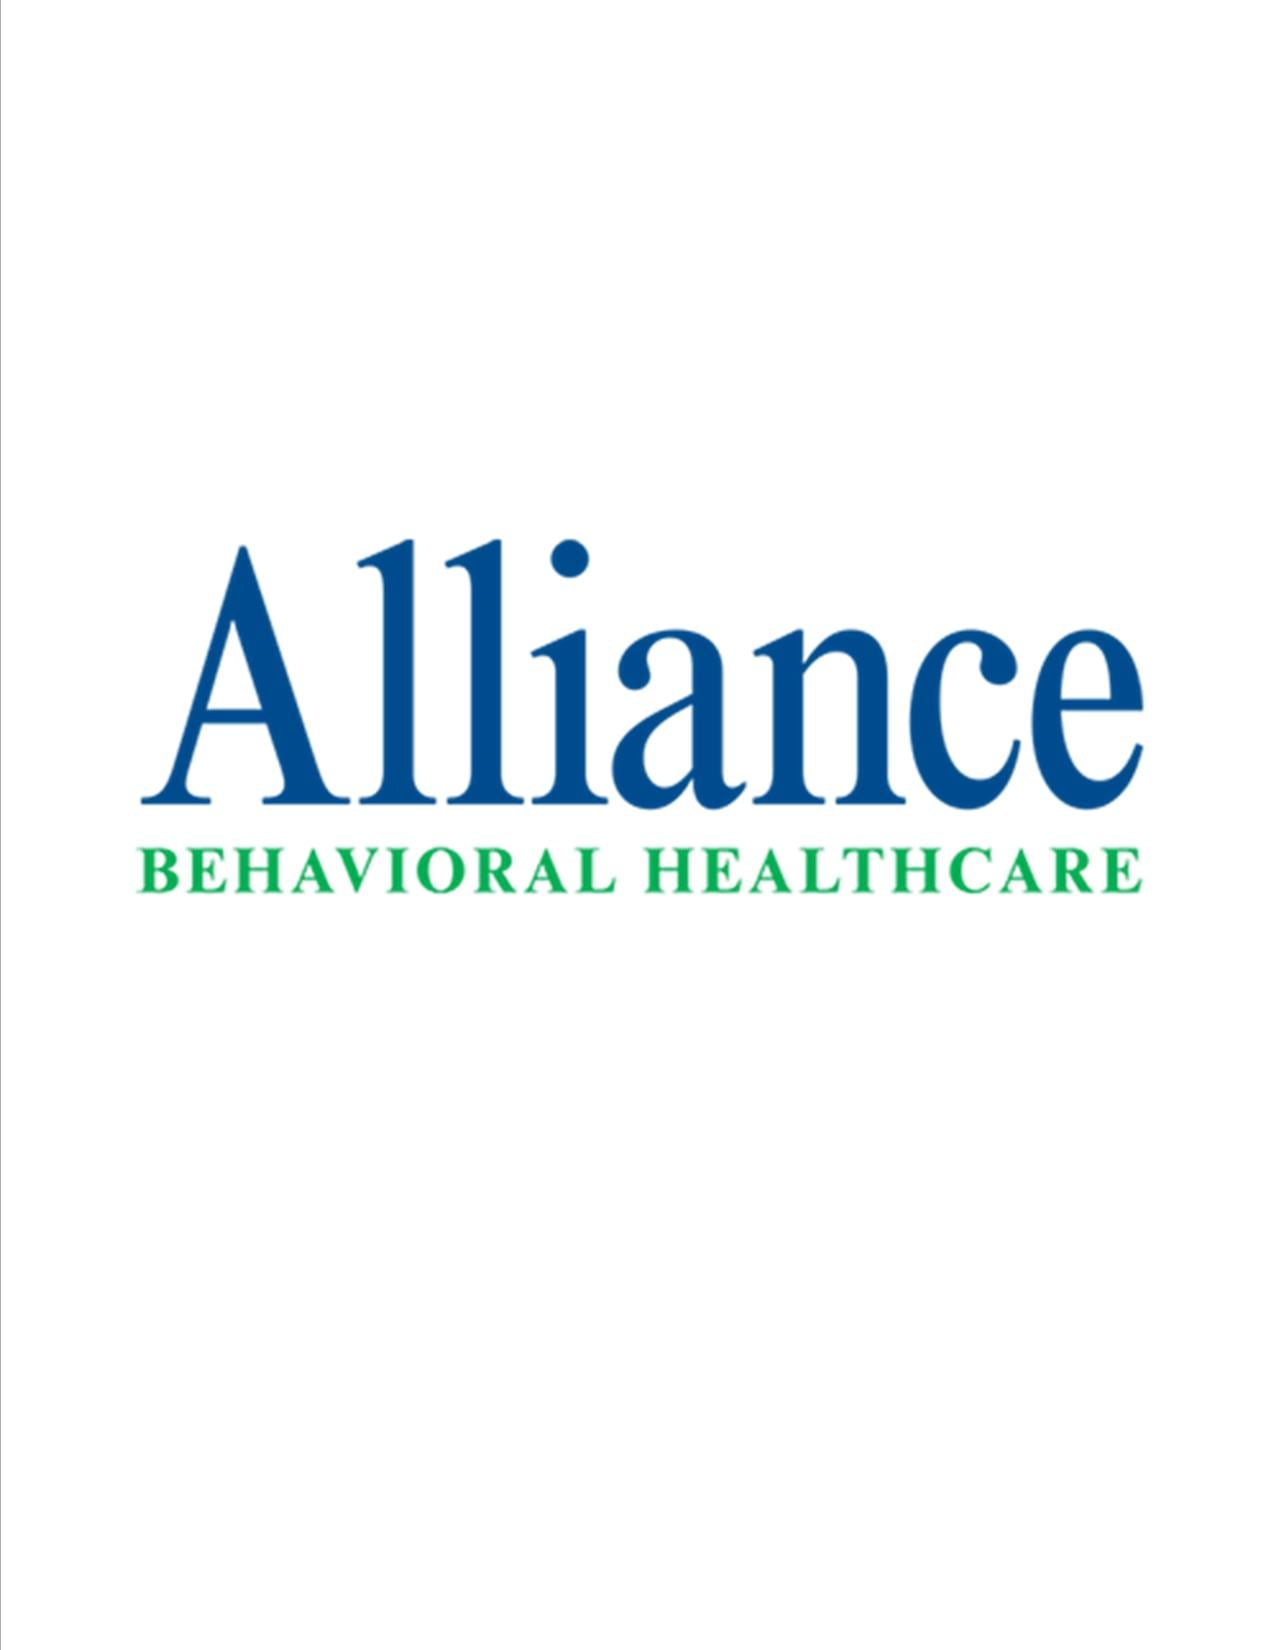 www. alliance bhc.org